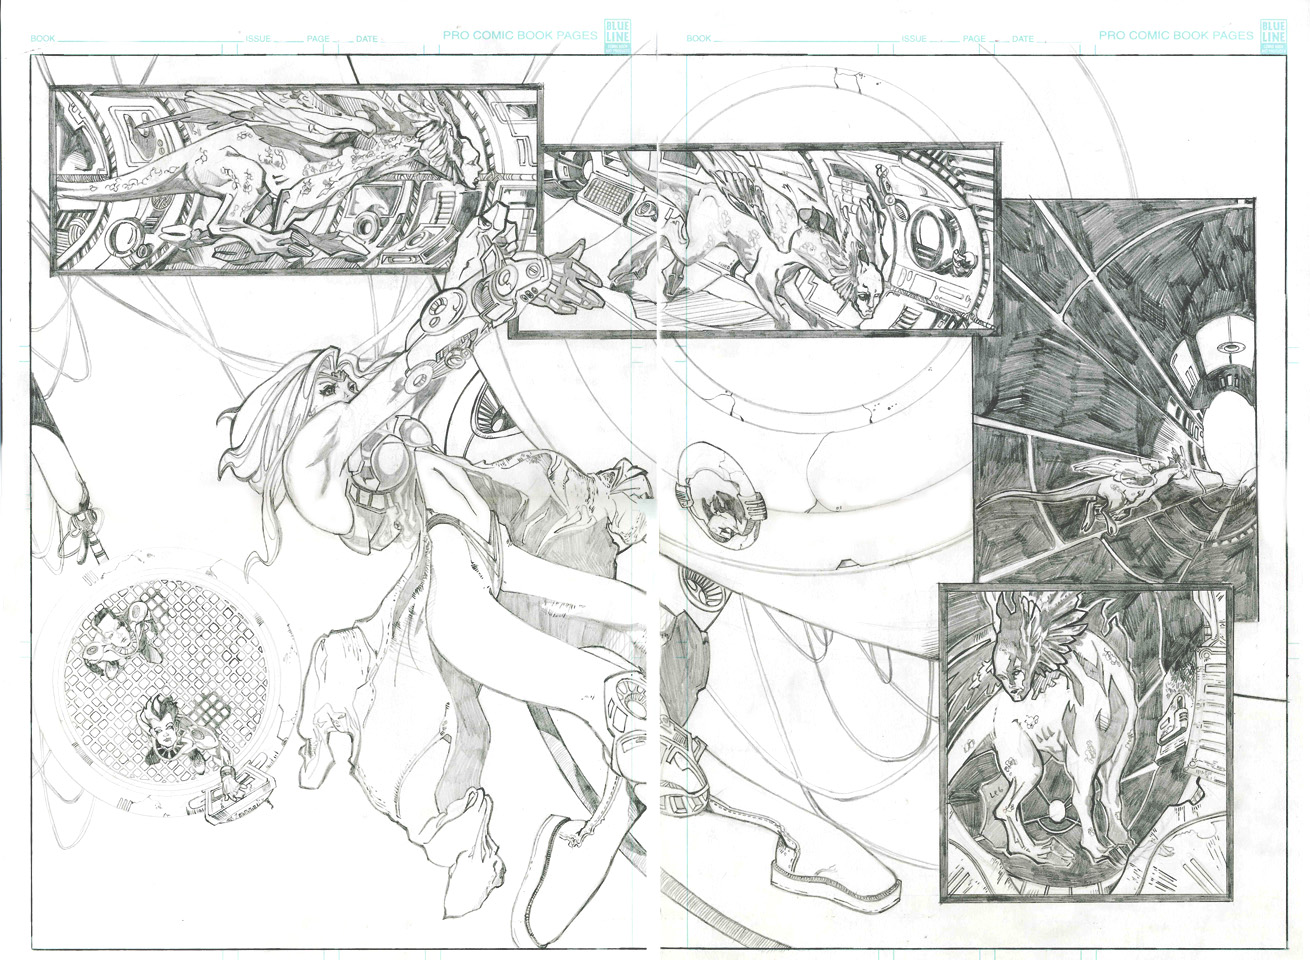 This is what the page spread was supposed to look like. I am keeping the concept in tact for the new version.